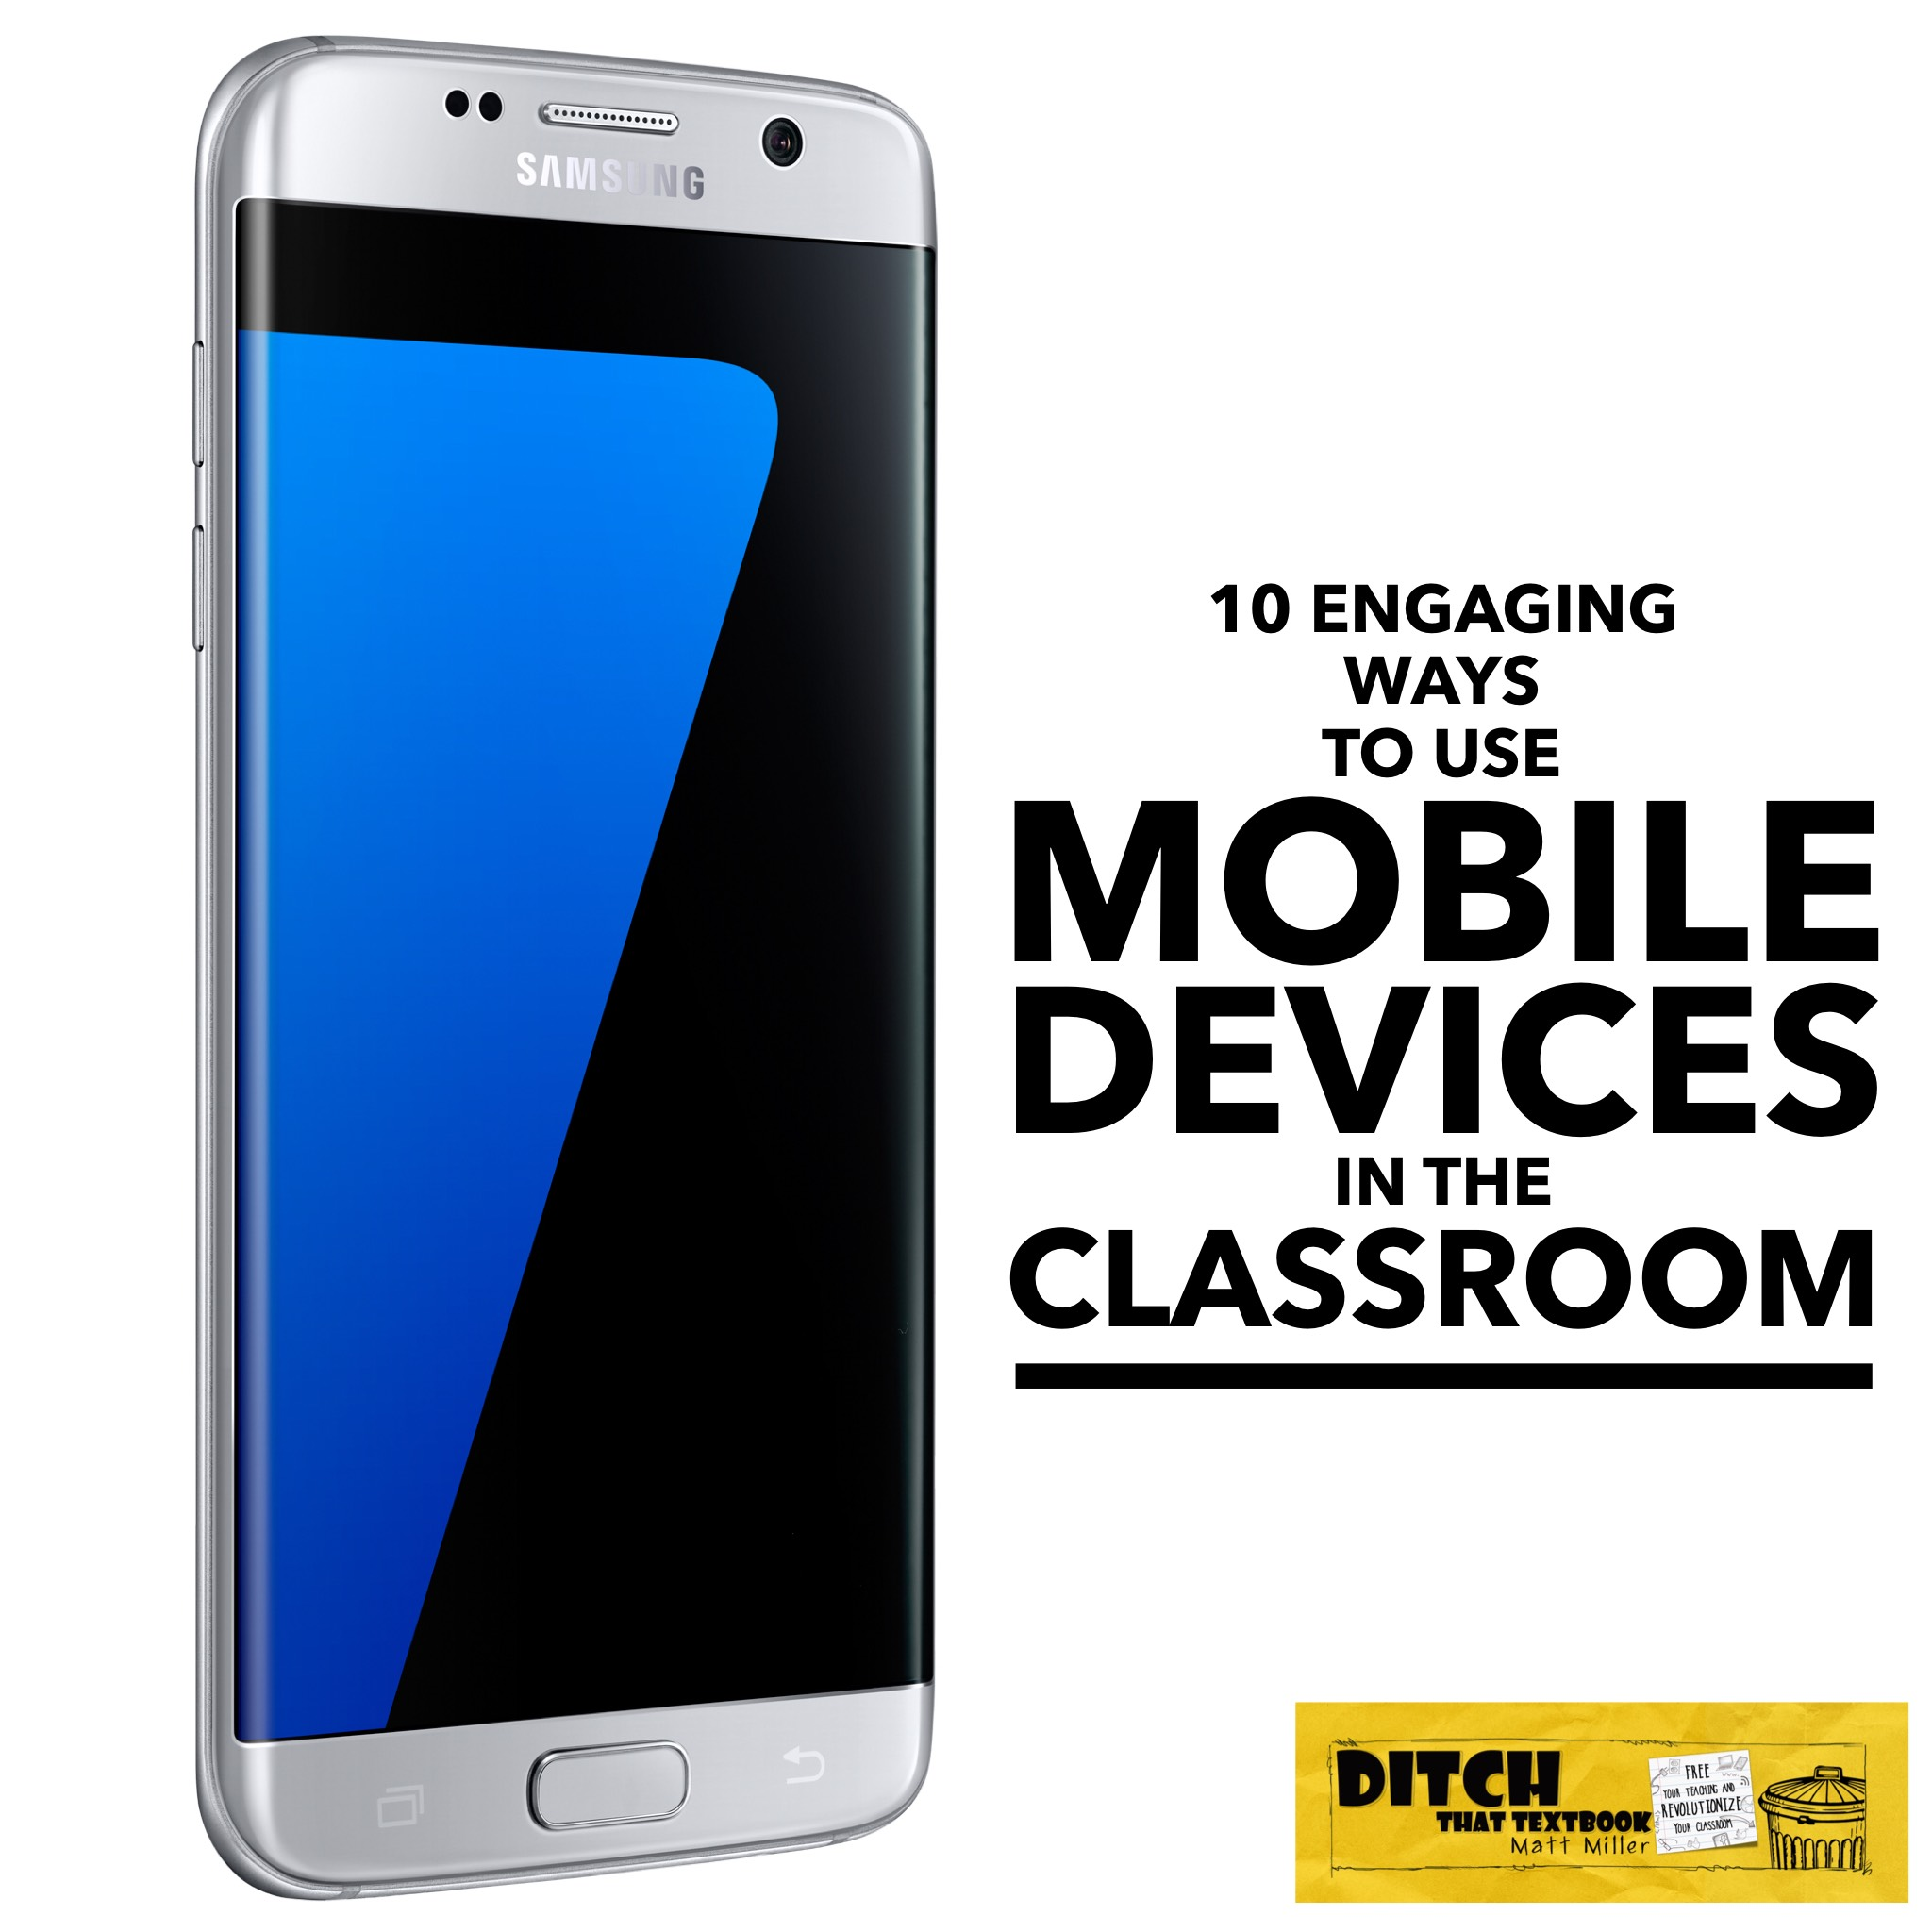 10 engaging ways to use mobile devices in the classroom | Ditch ...